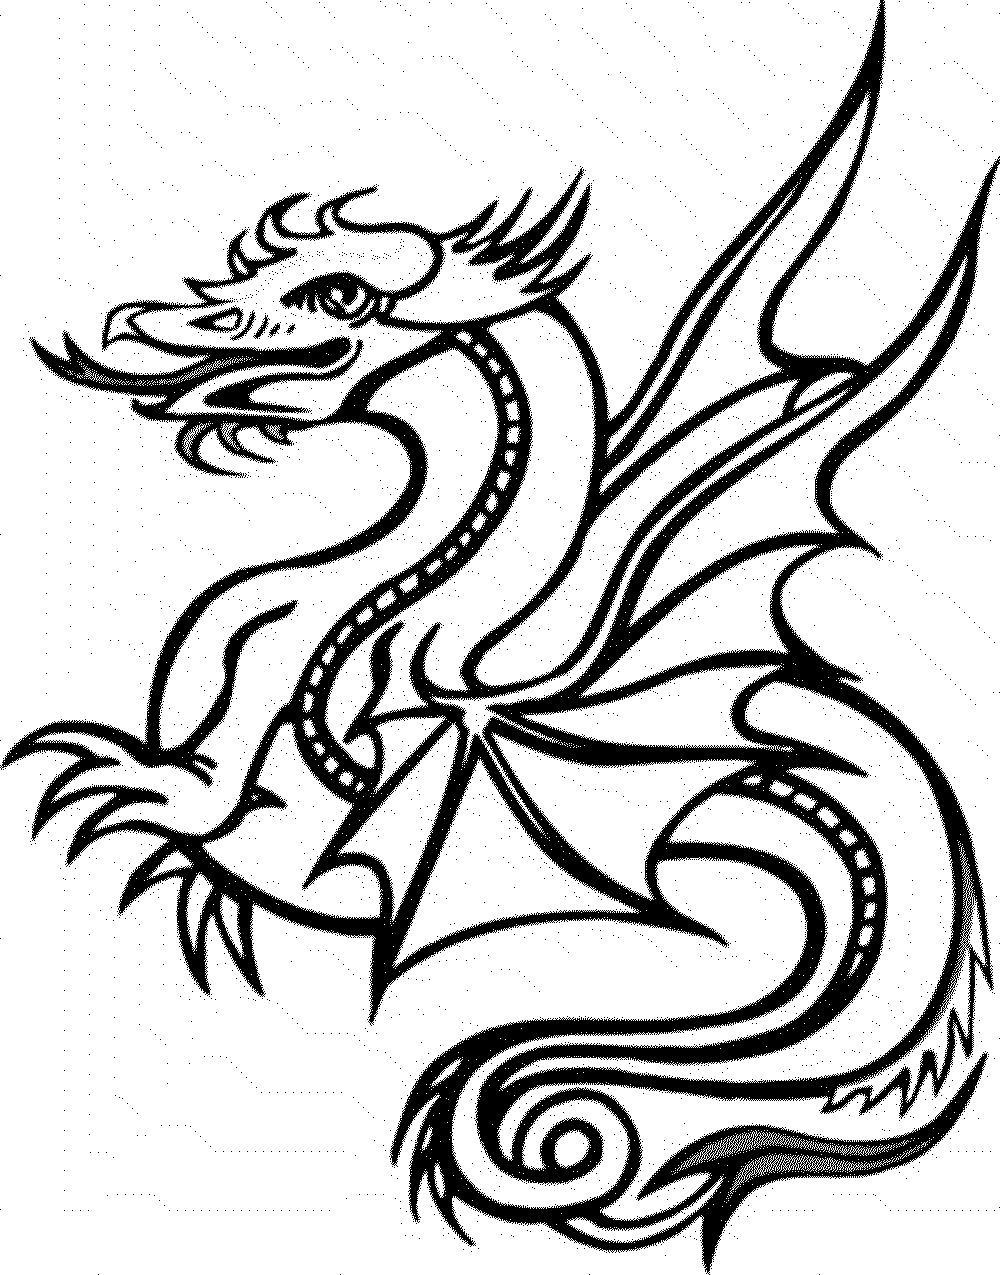 dragon coloring pages to print dragon coloring pages for adults to download and print for to print dragon coloring pages